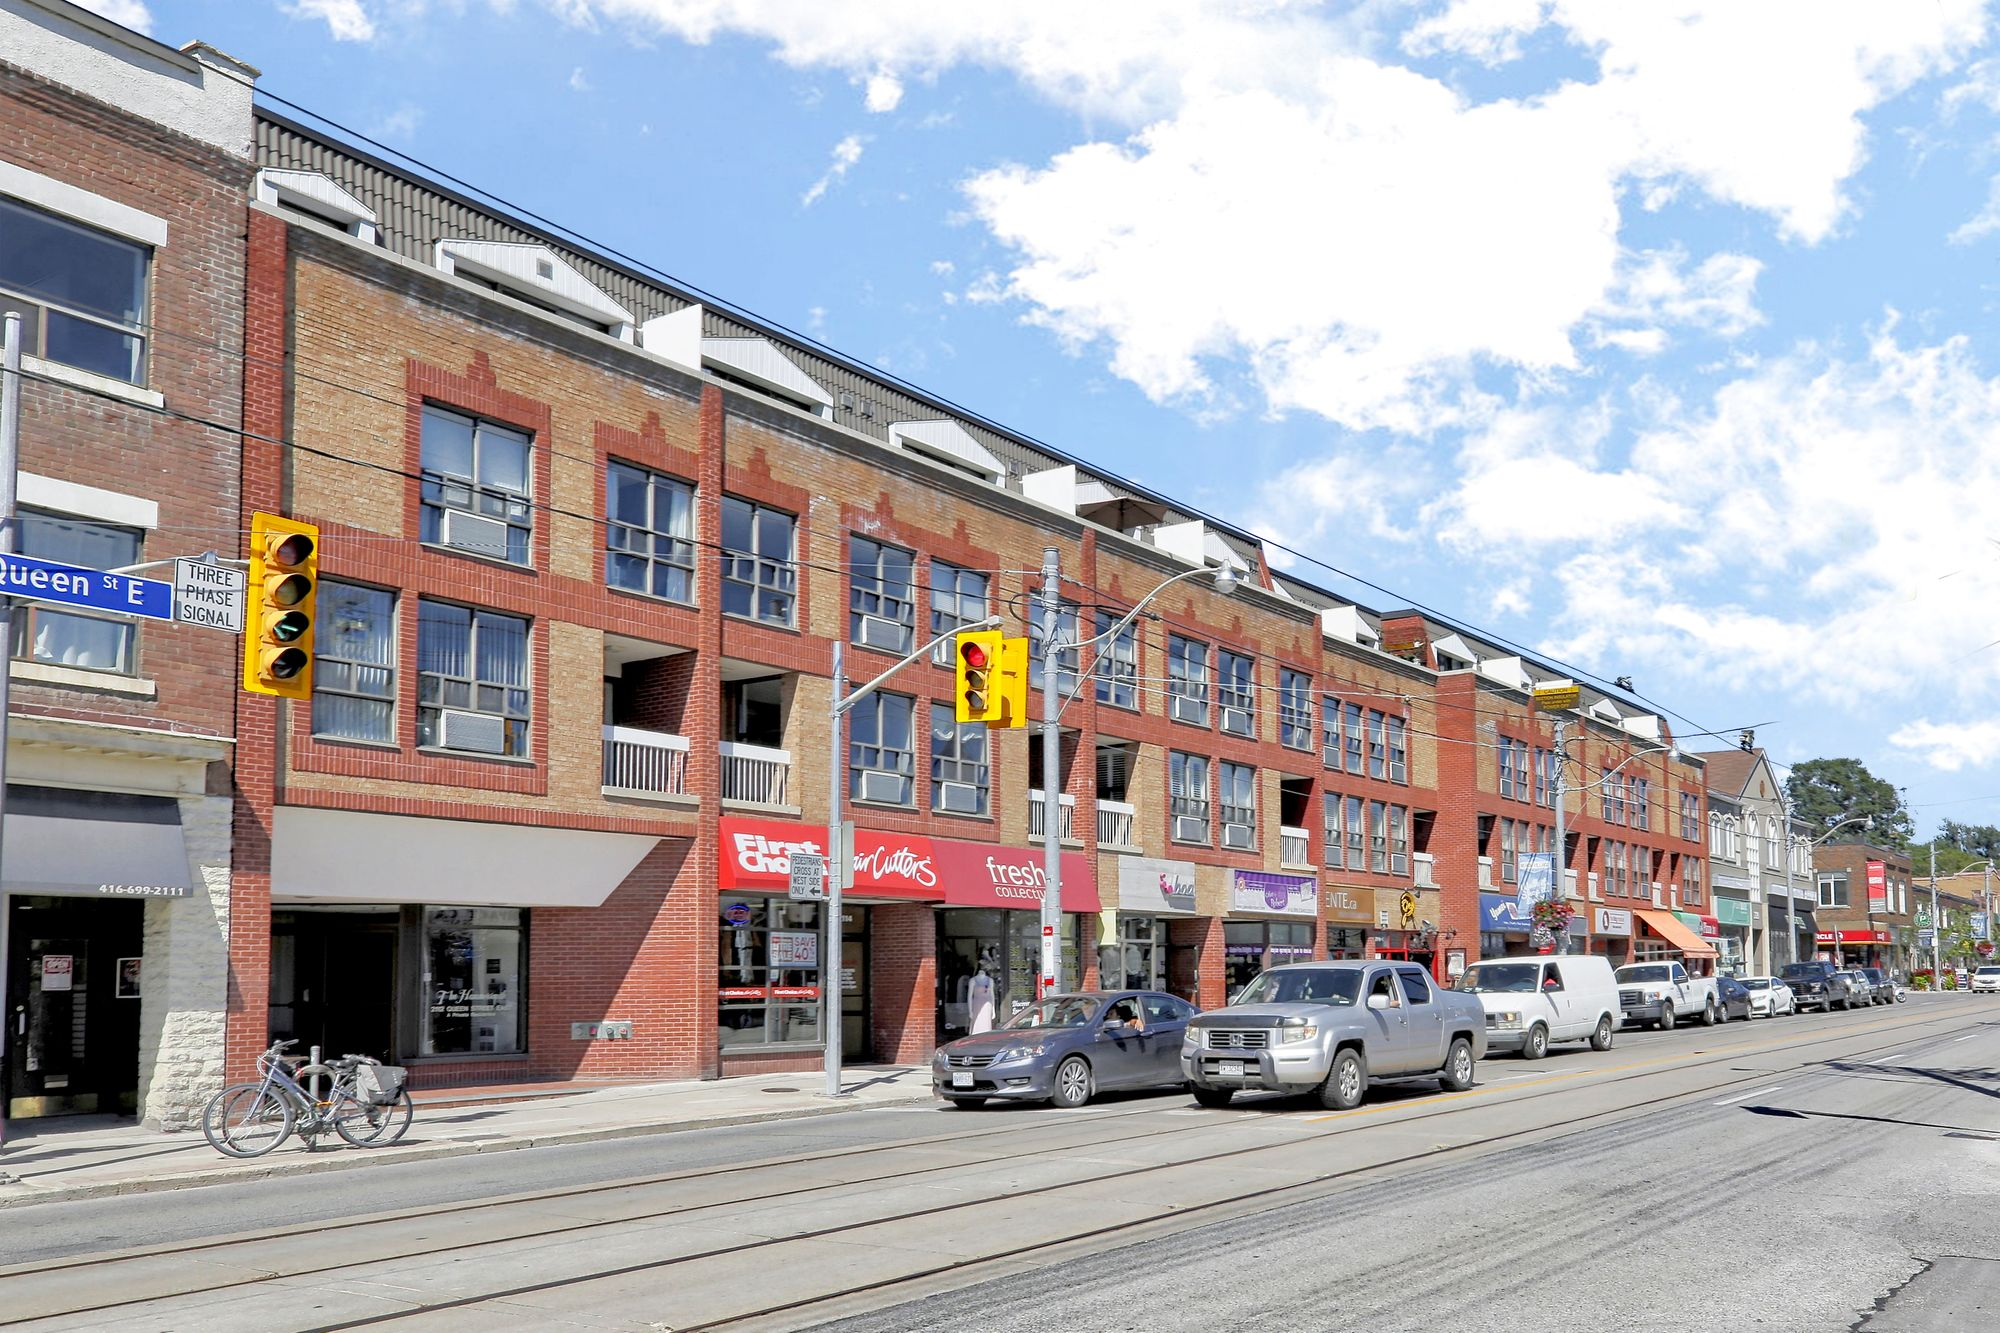 2112 Queen St E. This condo townhouse at The Hammersmith is located in  East End, Toronto - image #1 of 4 by Strata.ca